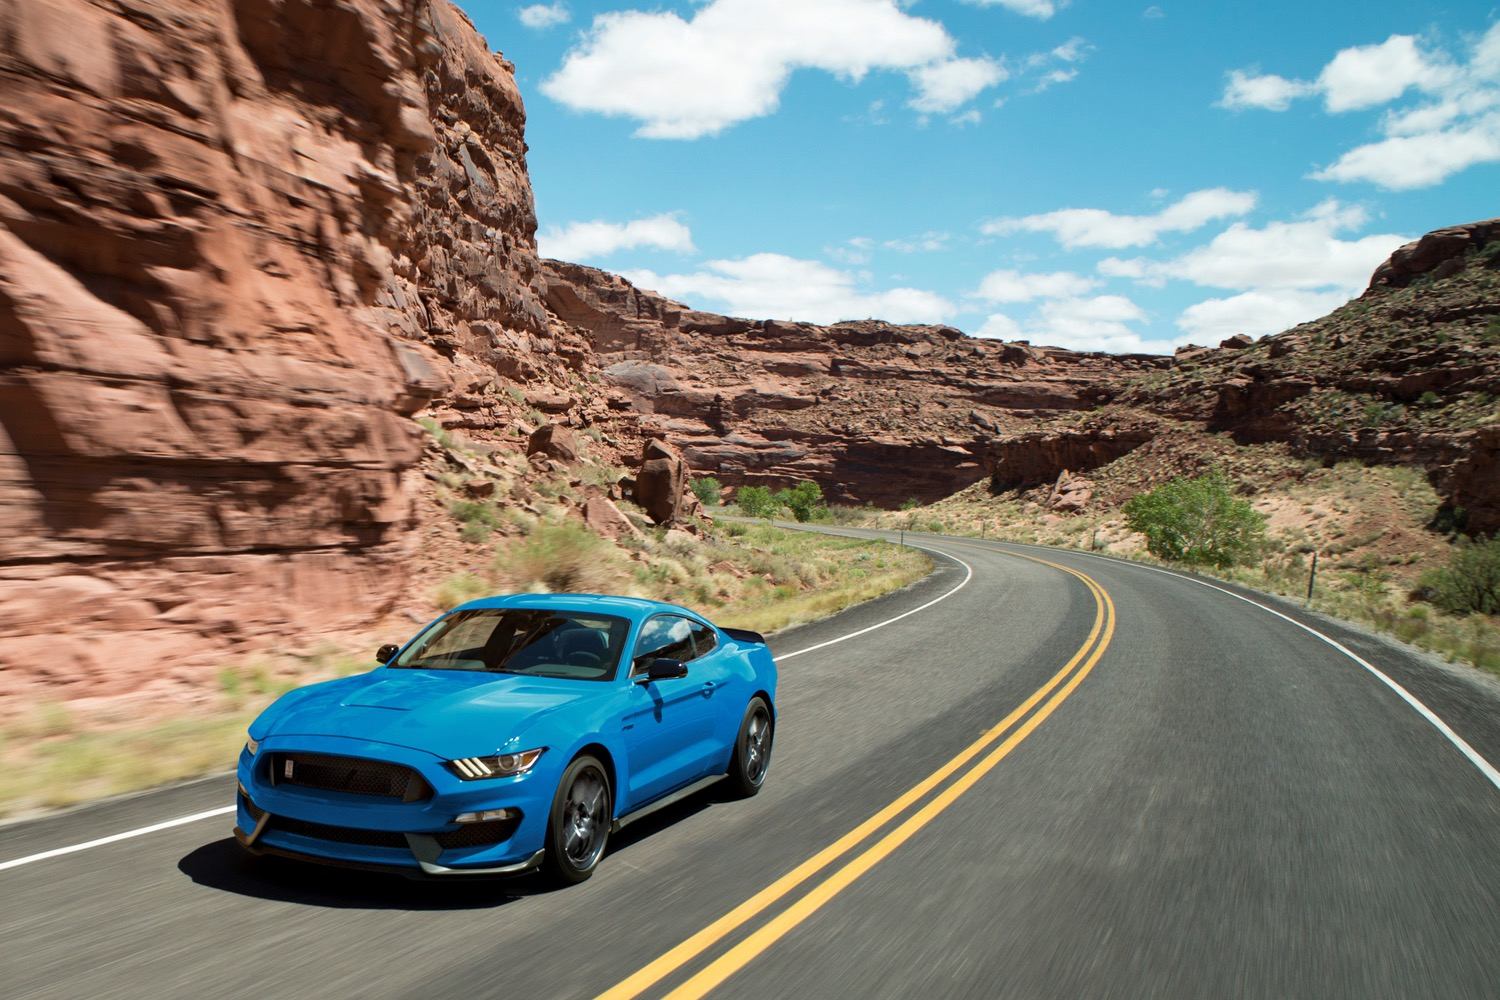 Ford S Shelby Gt350 And Gt350r Are Back For One More Model